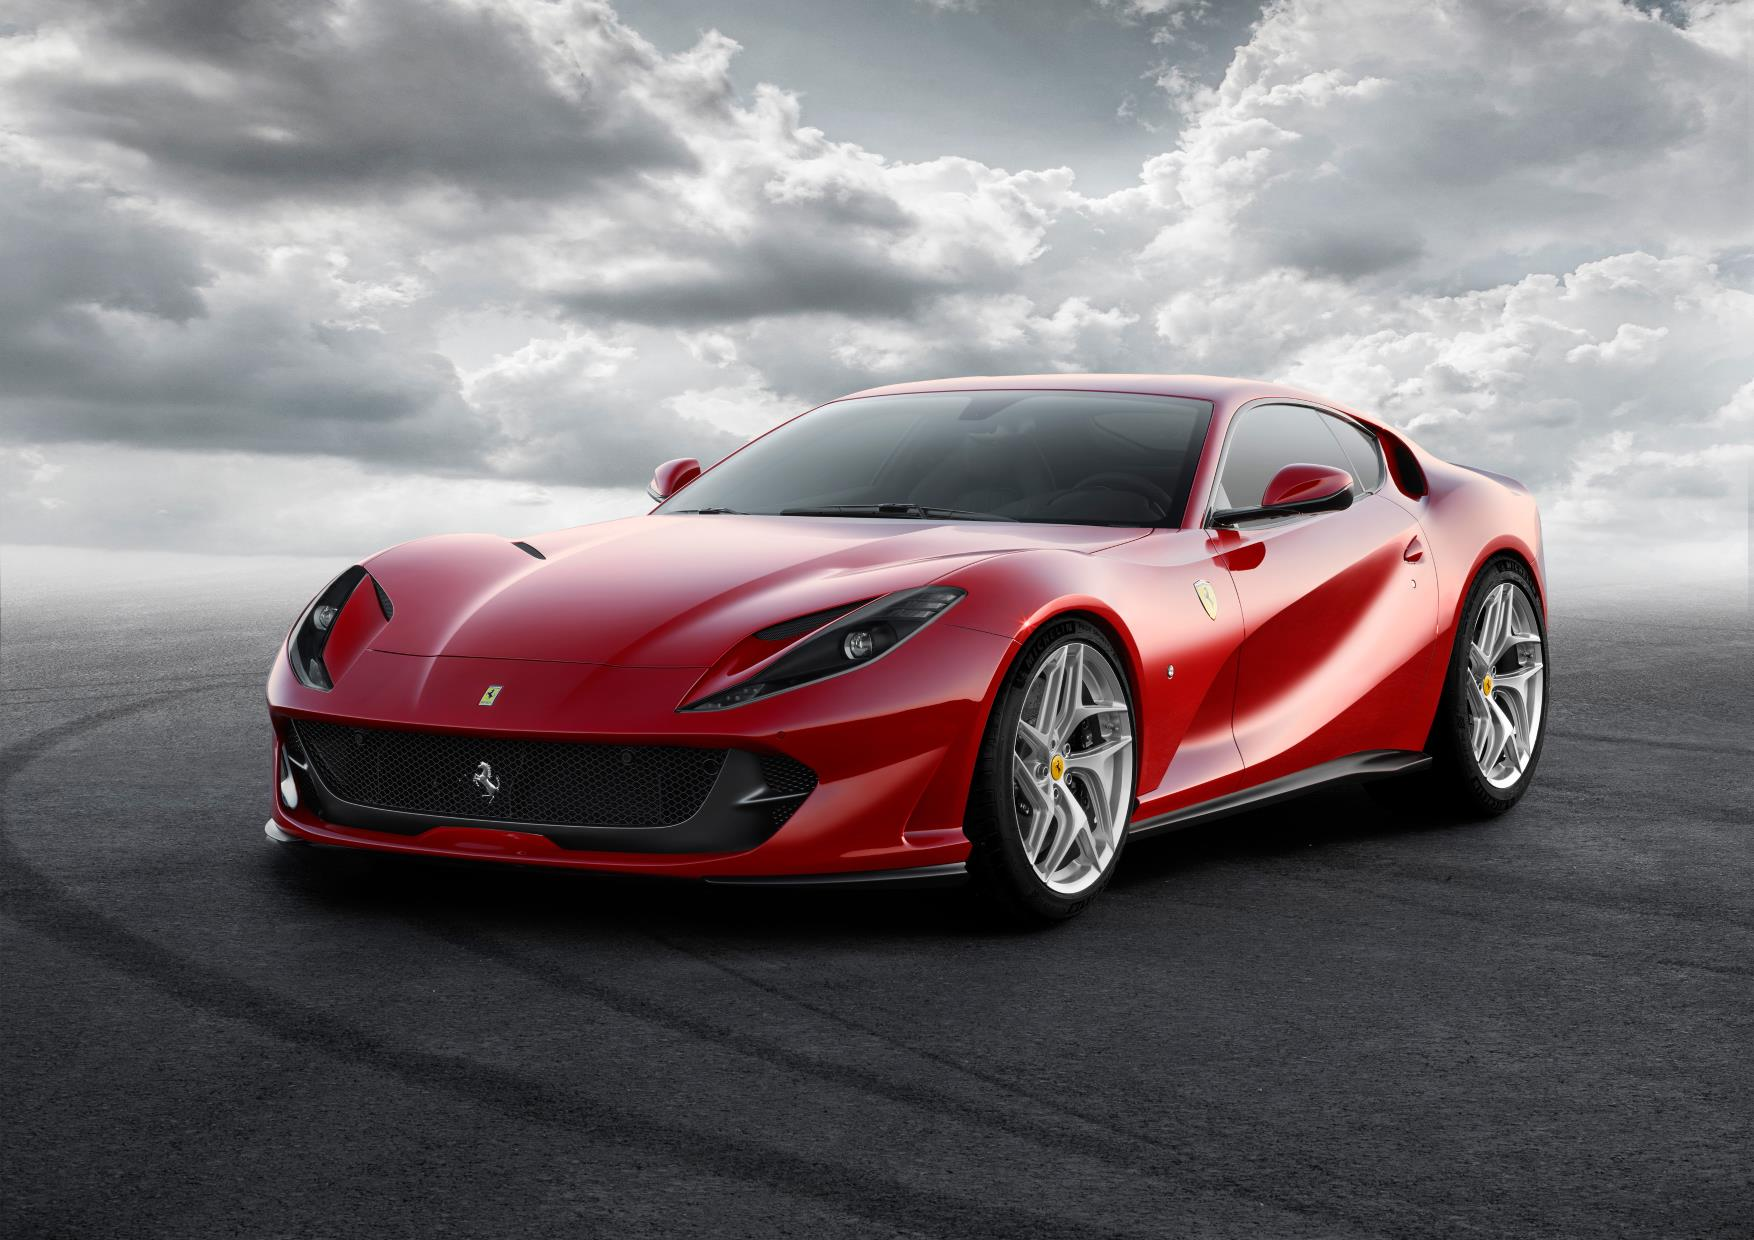 812 Superfast_ferrari.jpg